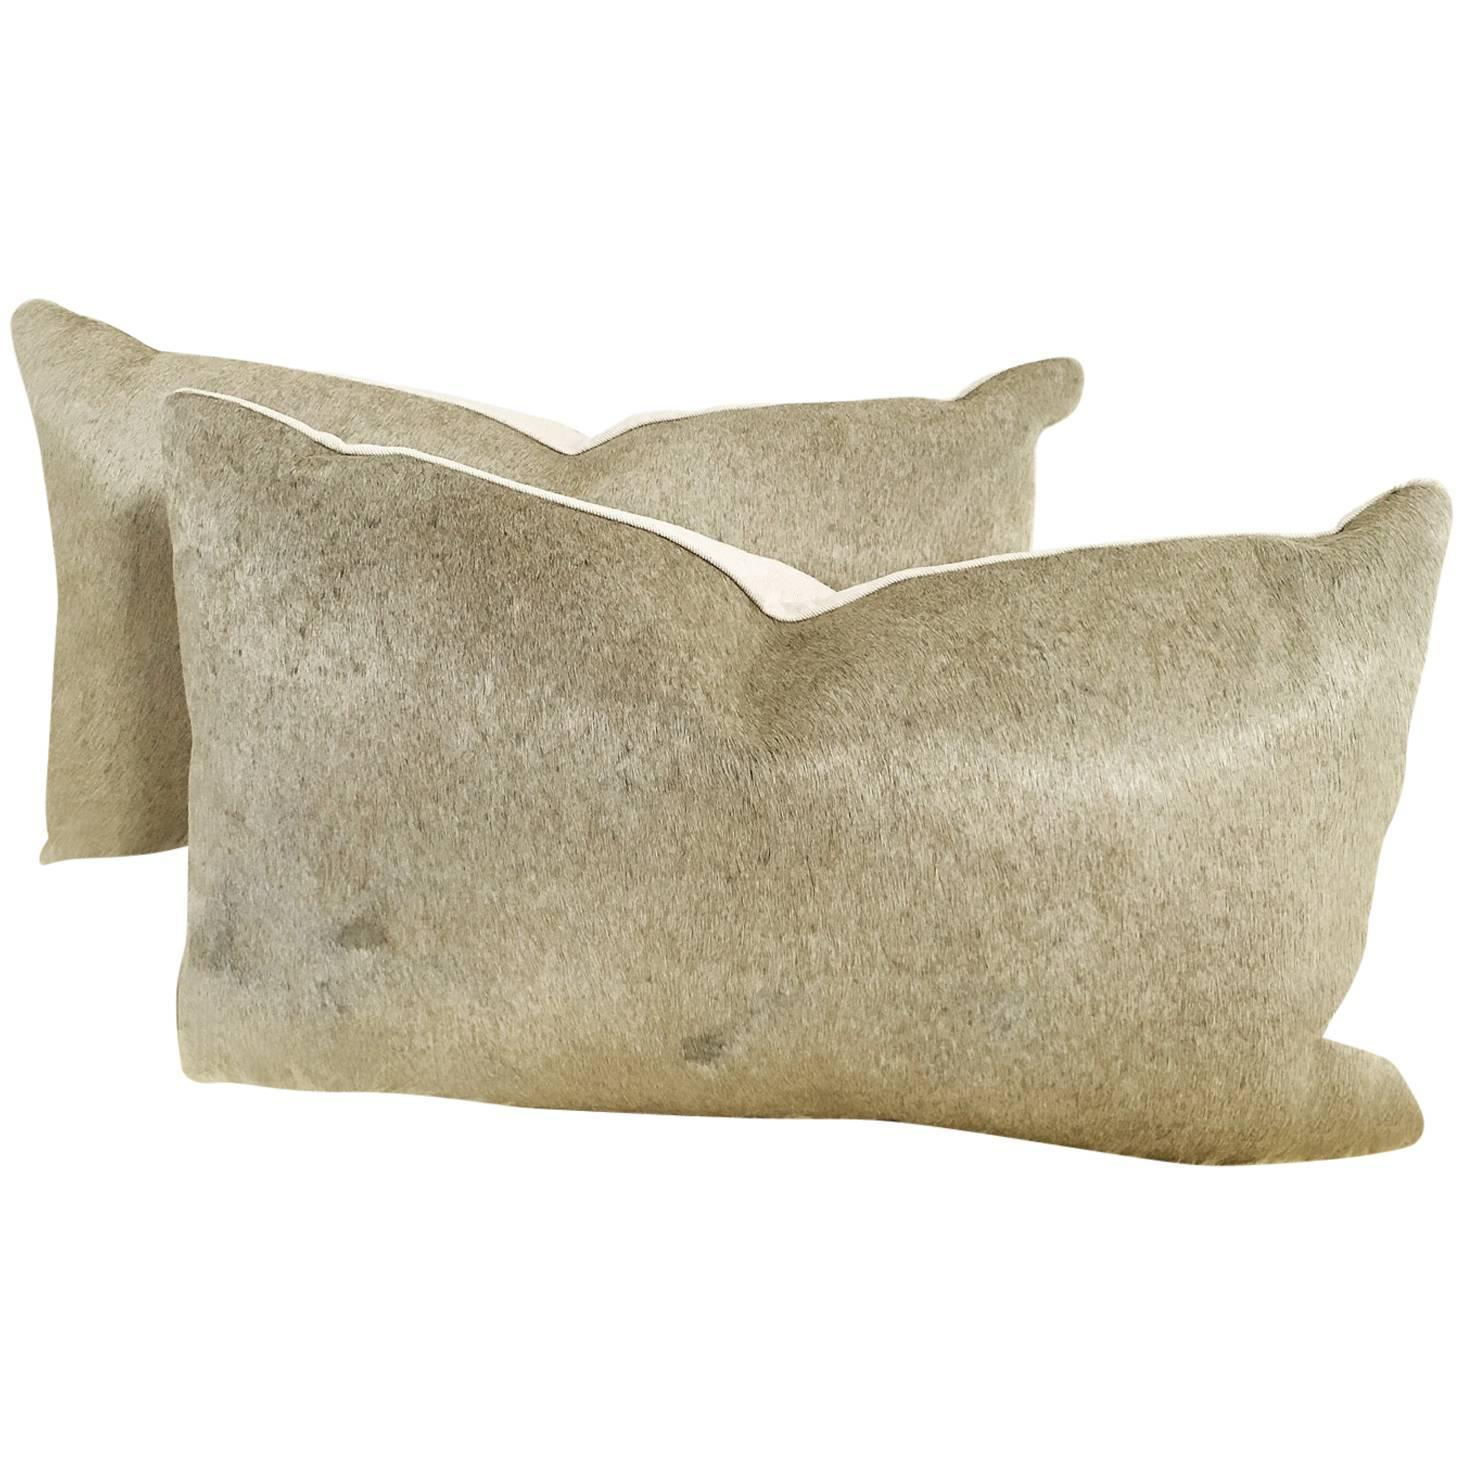 cowhide sofa throws most comfortable sofas consumer reports pair of grey pillows at 1stdibs